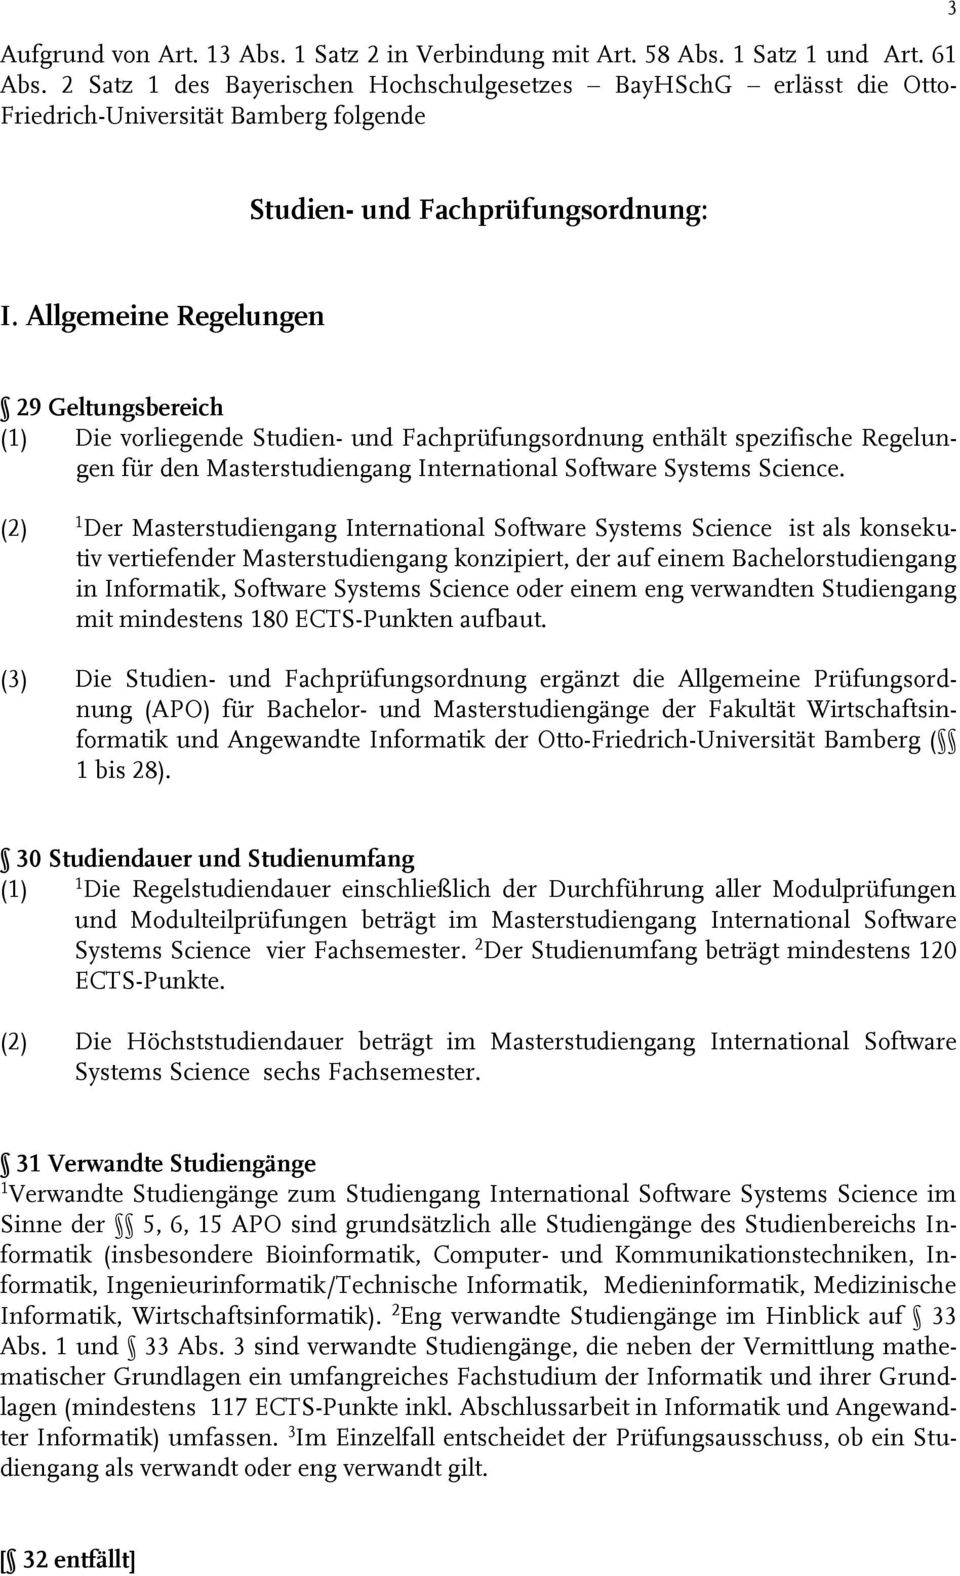 Allgemeine Regelungen 29 Geltungsbereich (1) Die vorliegende Studien- und Fachprüfungsordnung enthält spezifische Regelungen für den Masterstudiengang International Software Systems Science.